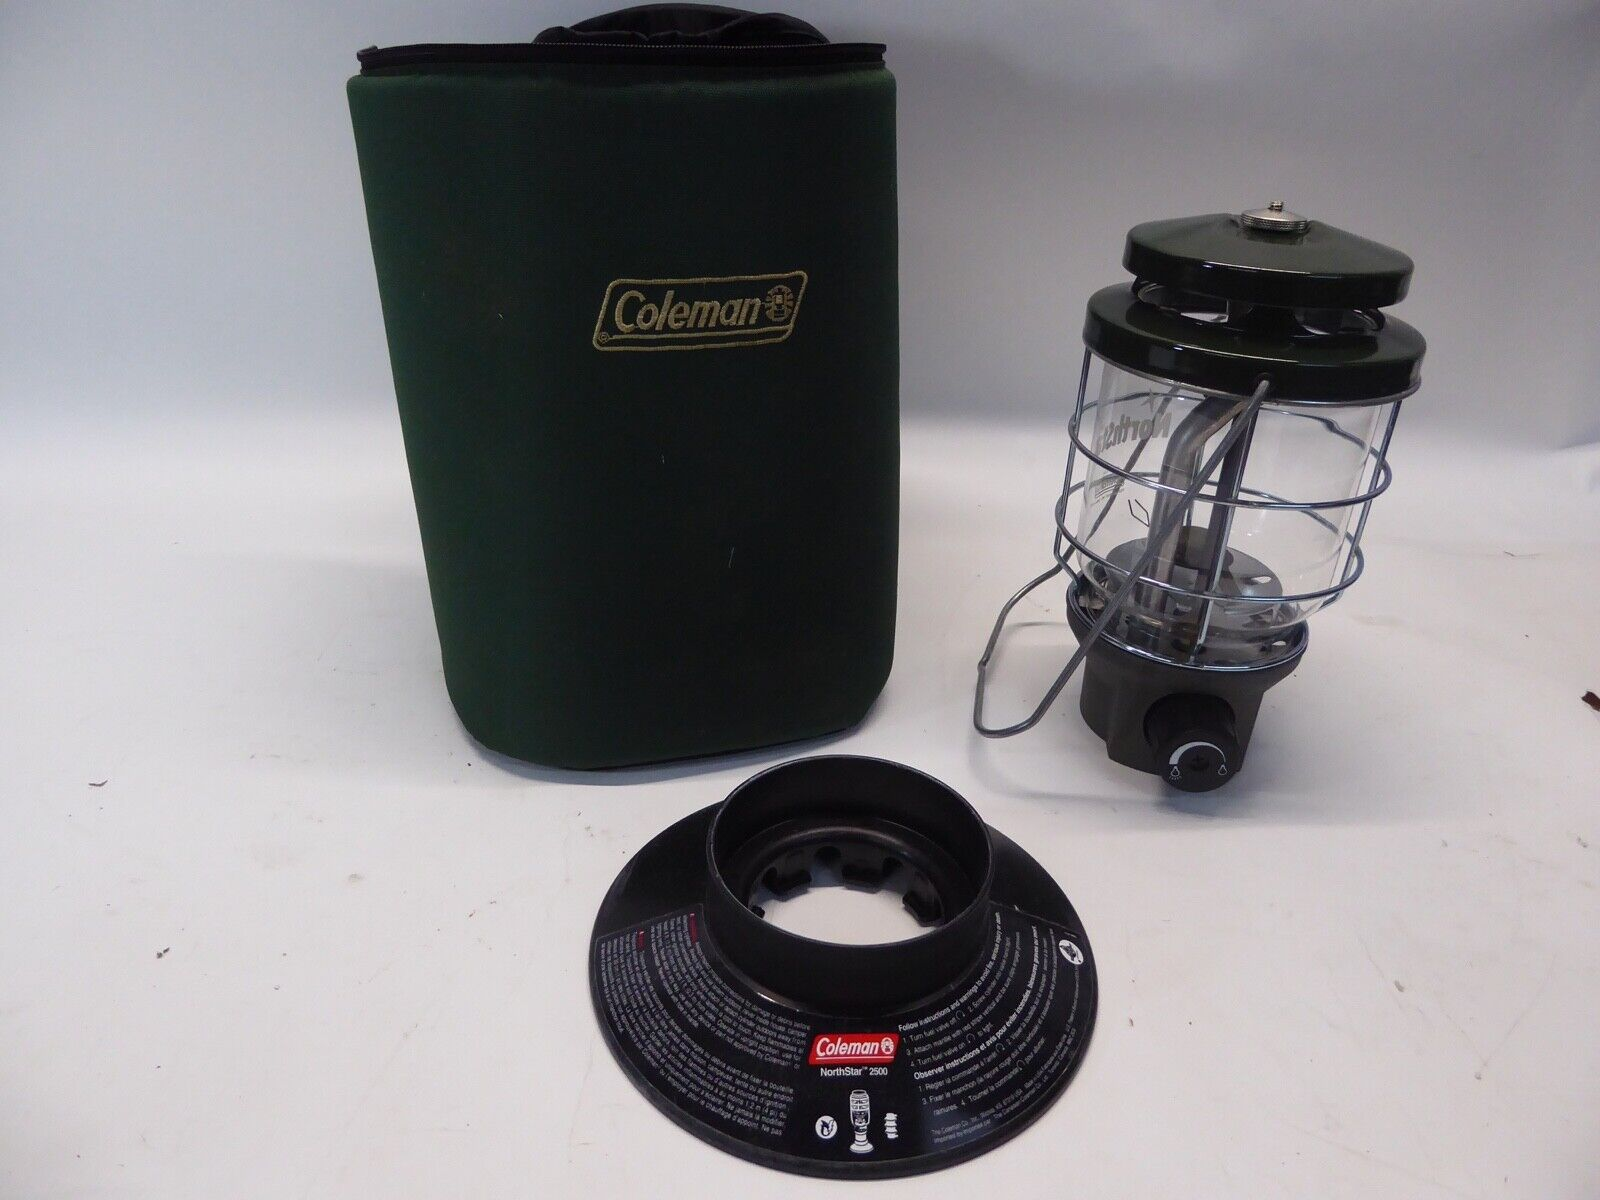 COLEMAN NORTHSTAR 2500 CAMPING LANTERN WITH SOFT CASE